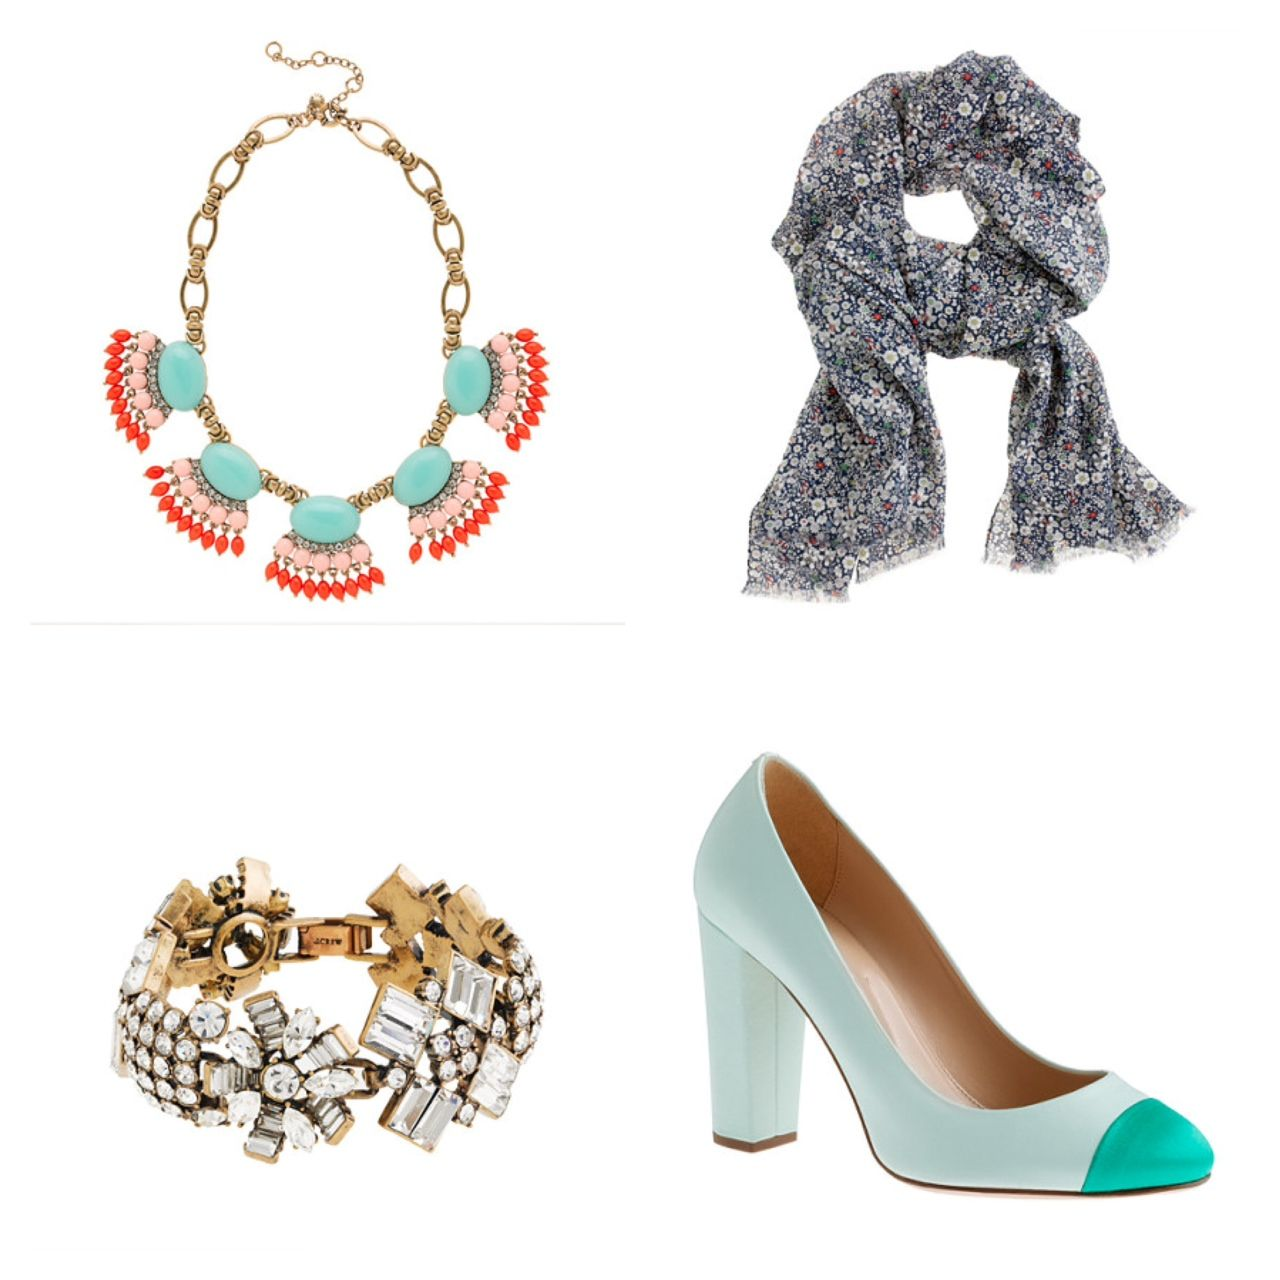 Accessories Trends 2019 - Bags, Shoes, Jewelry and ...